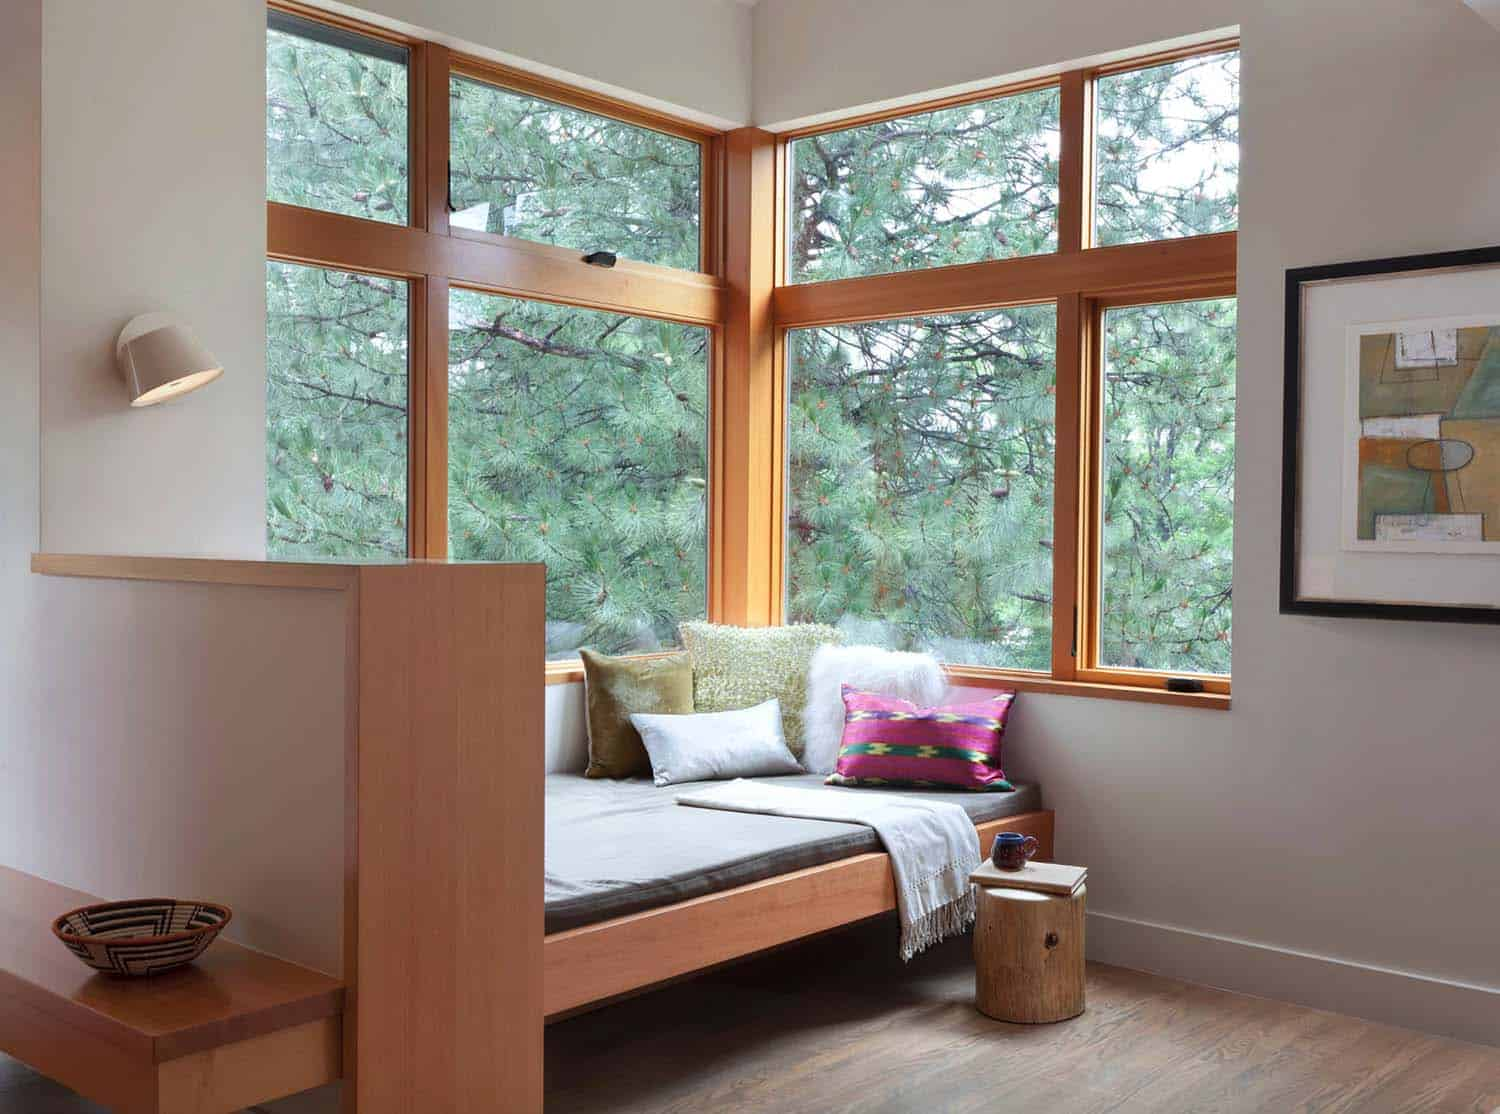 Cozy Reading Nooks For Lounging-27-1 Kindesign